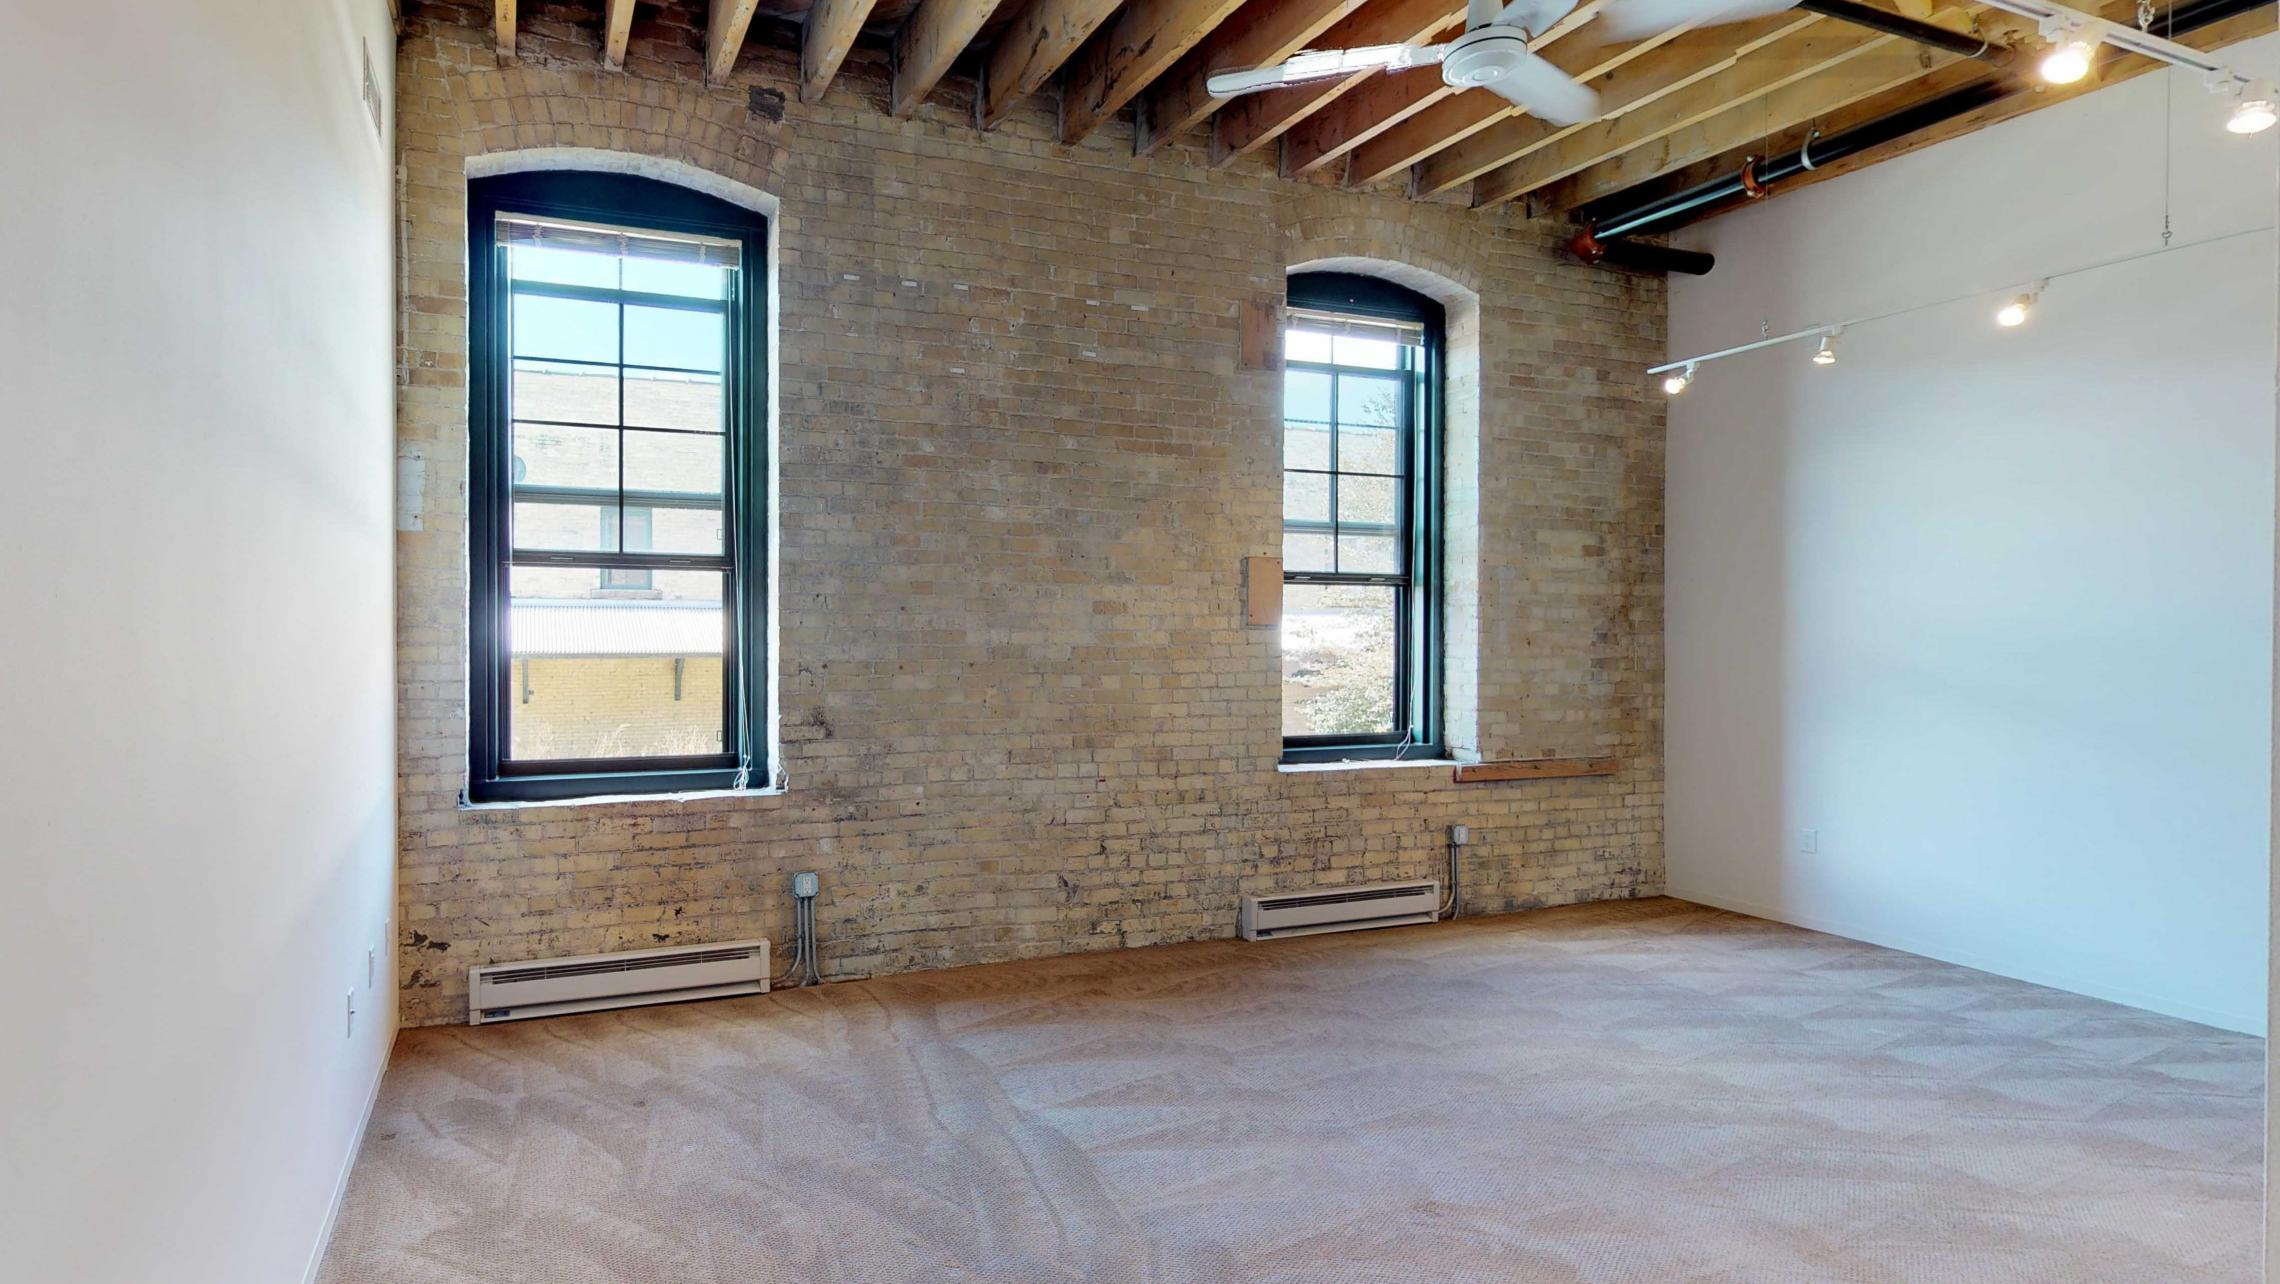 Tobacco-Lofts-Apartment-E210-one-bedroom-historic-exposed-brick-downtown-Madison